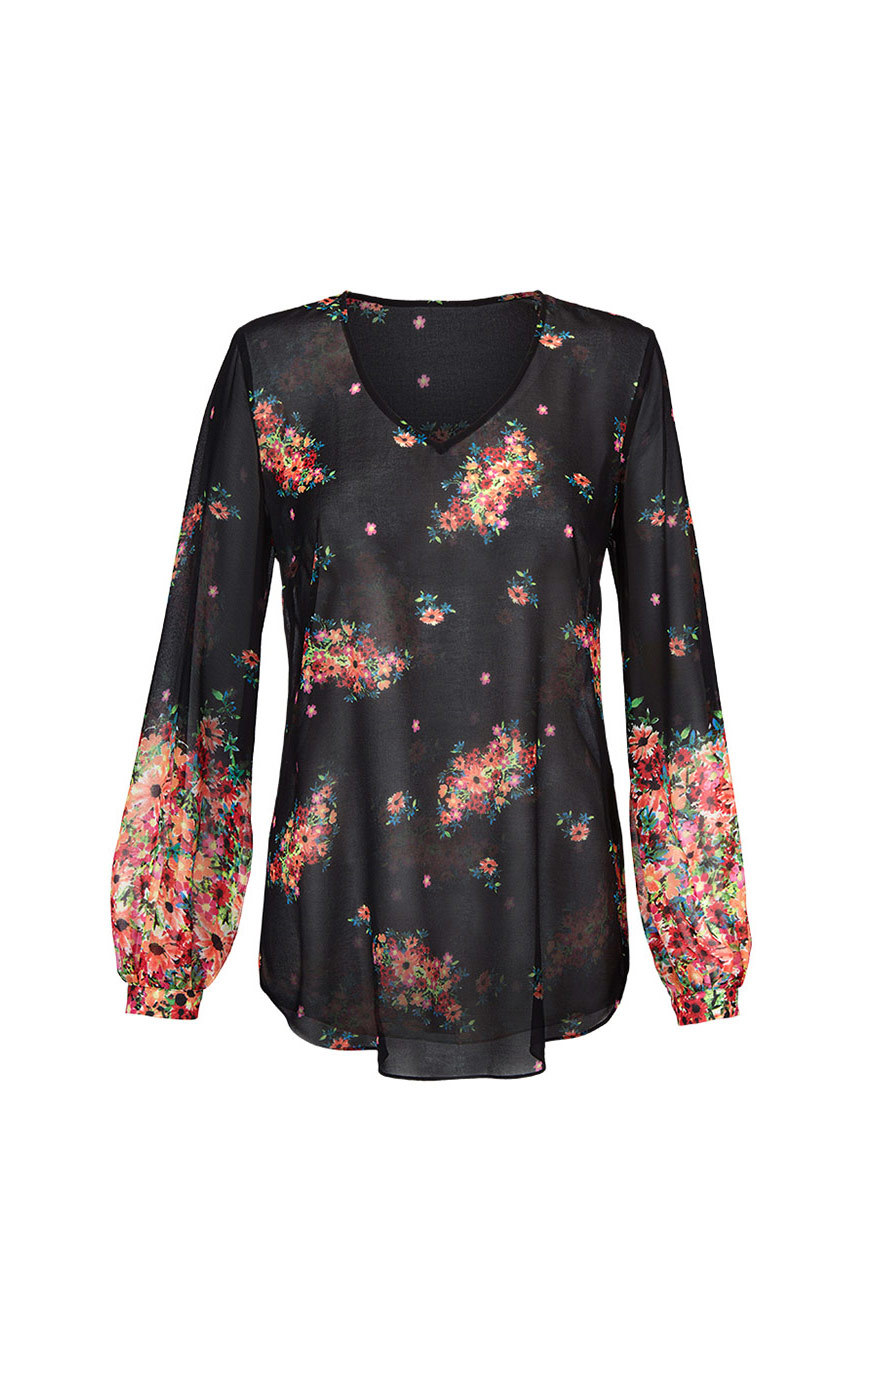 cabi's Blooming Blouse